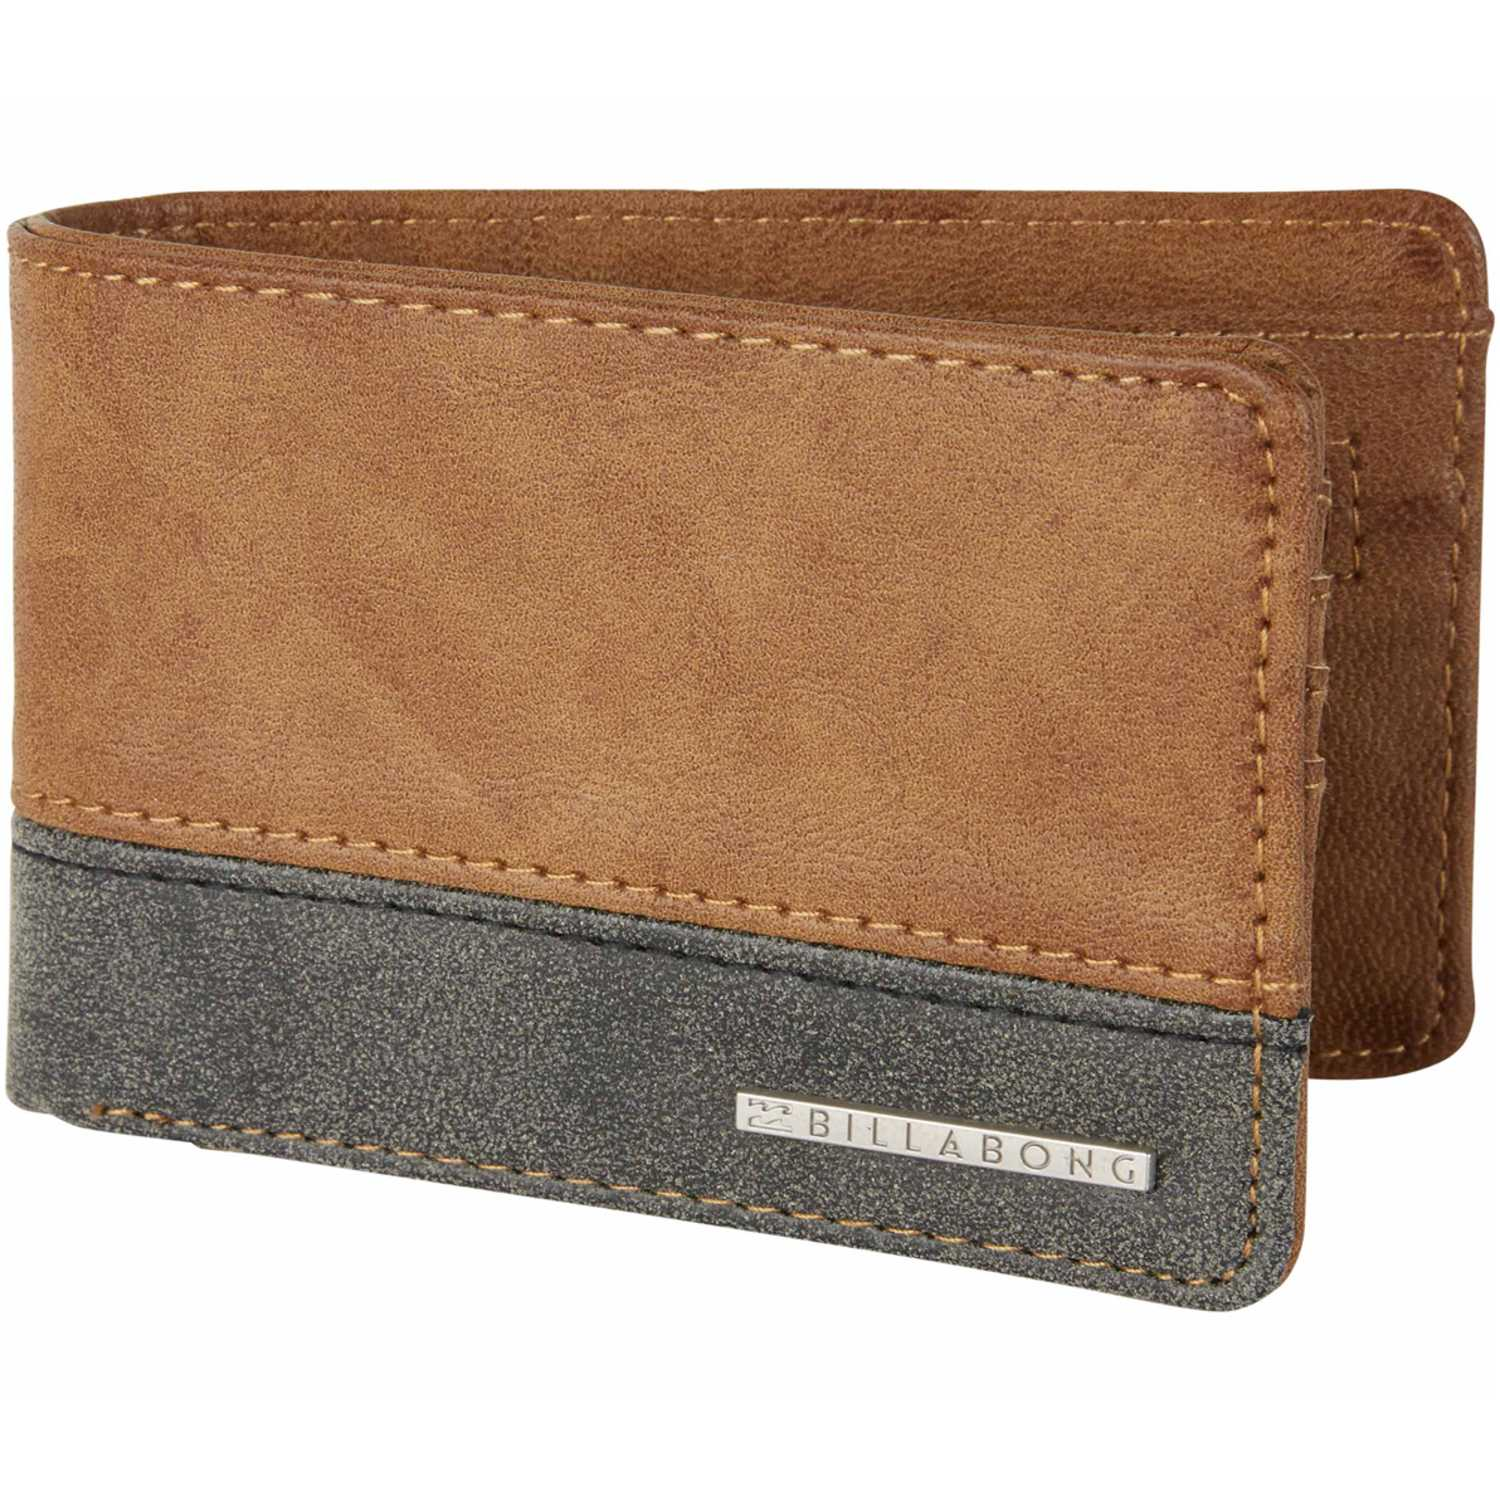 ae6d74eda Billetera de Hombre Billabong Tan dimension wallet | platanitos.com